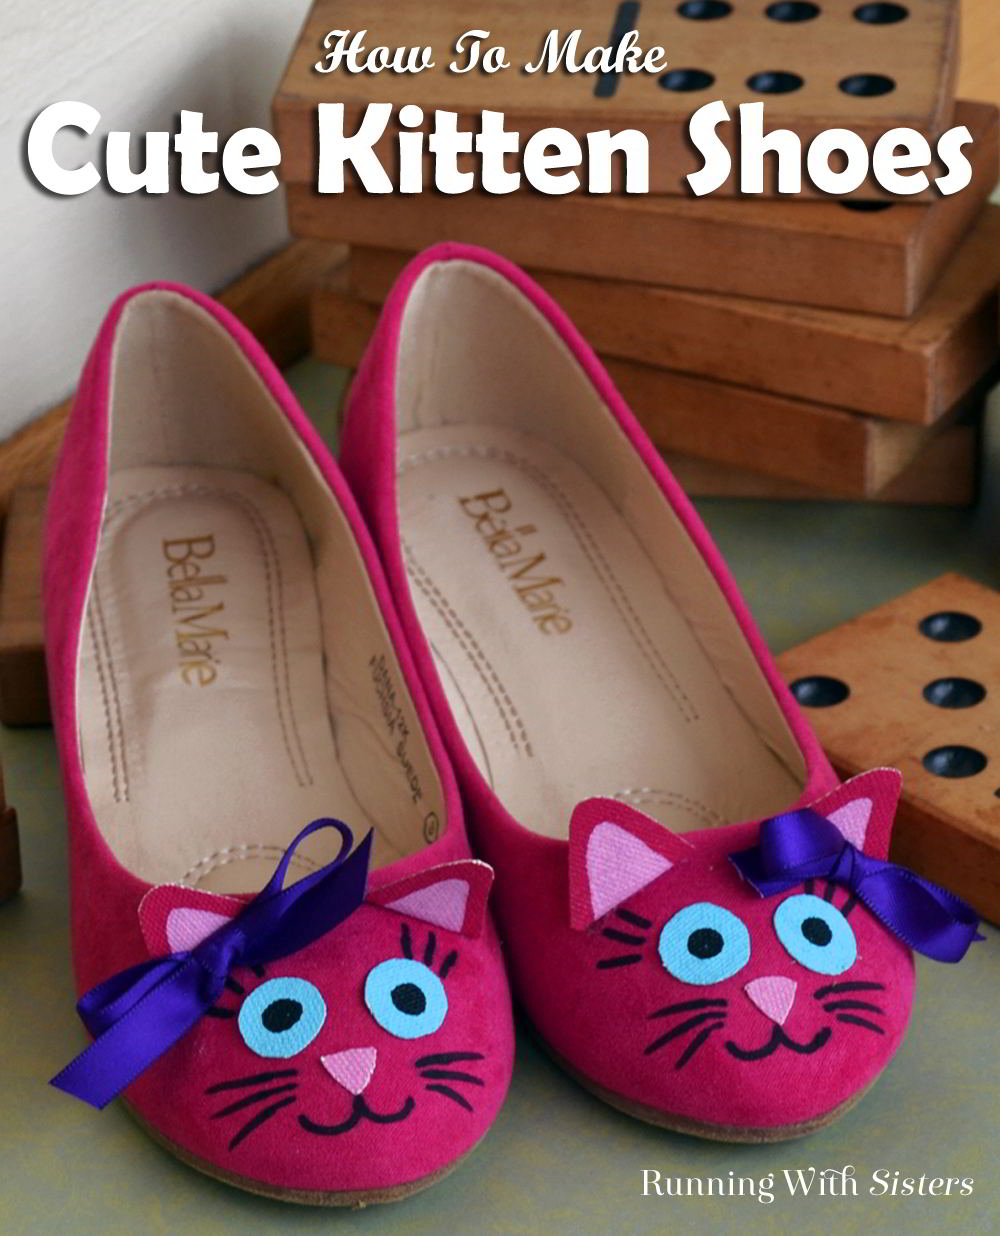 Turn a pair of pink flats into super cute kitten shoes! Just add kitty cat ears and a sweet little kitty cat face.